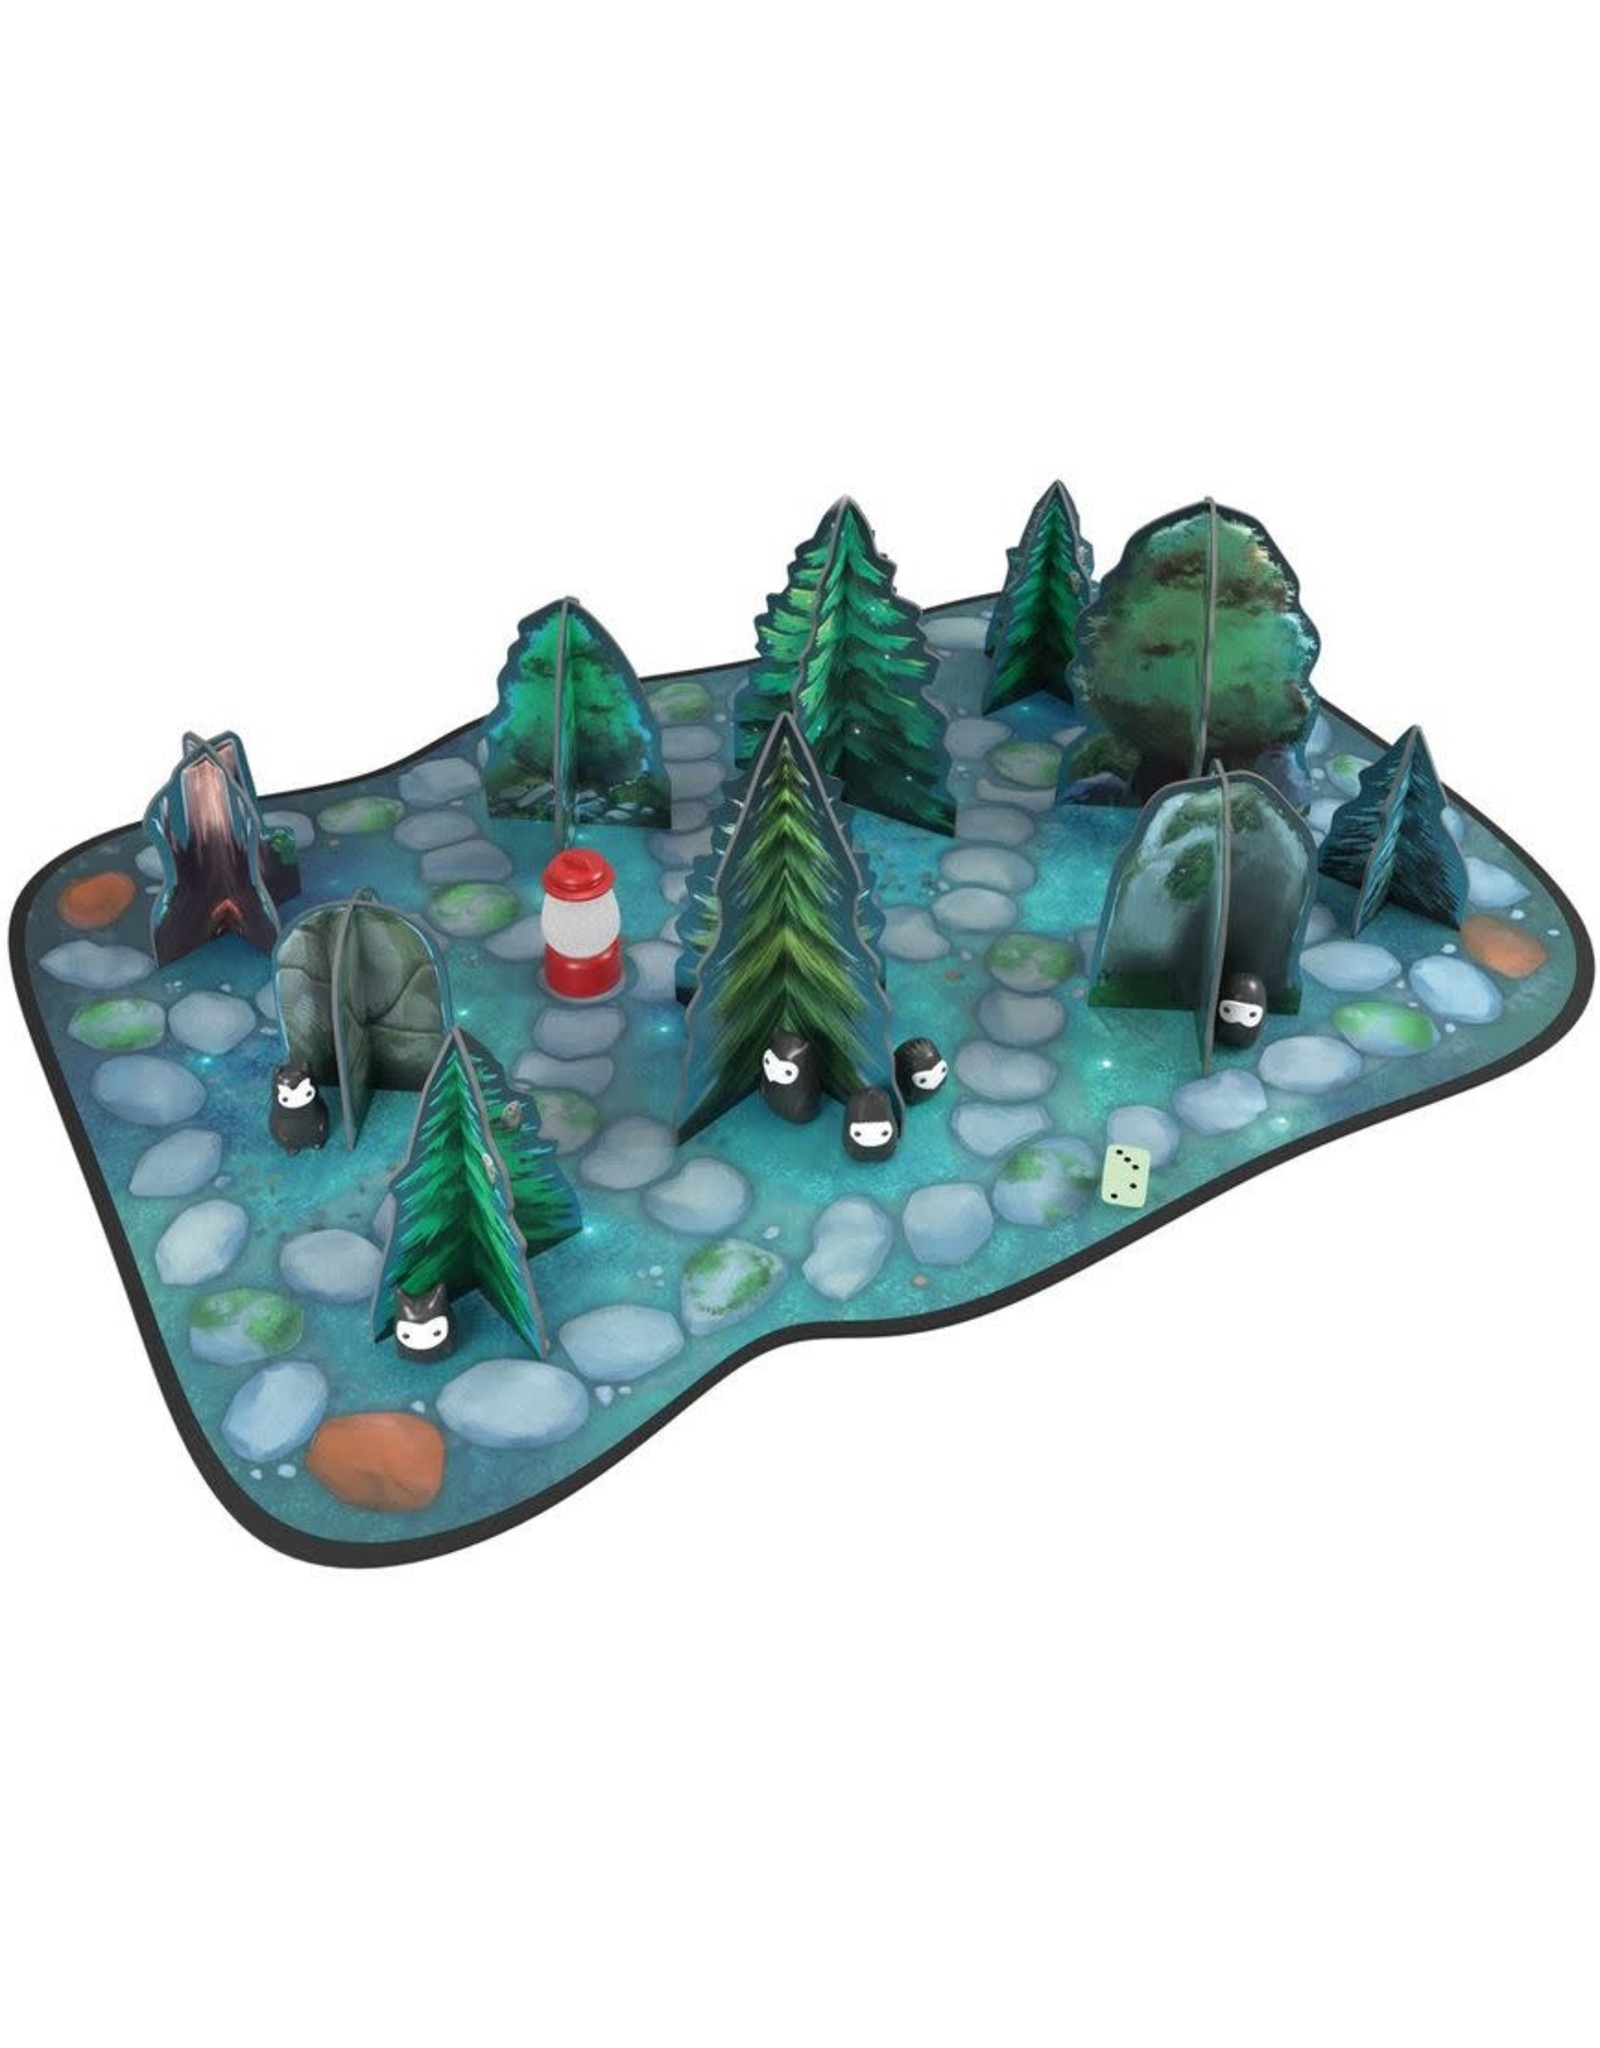 Thinkfun Inc. Shadows in the Forest